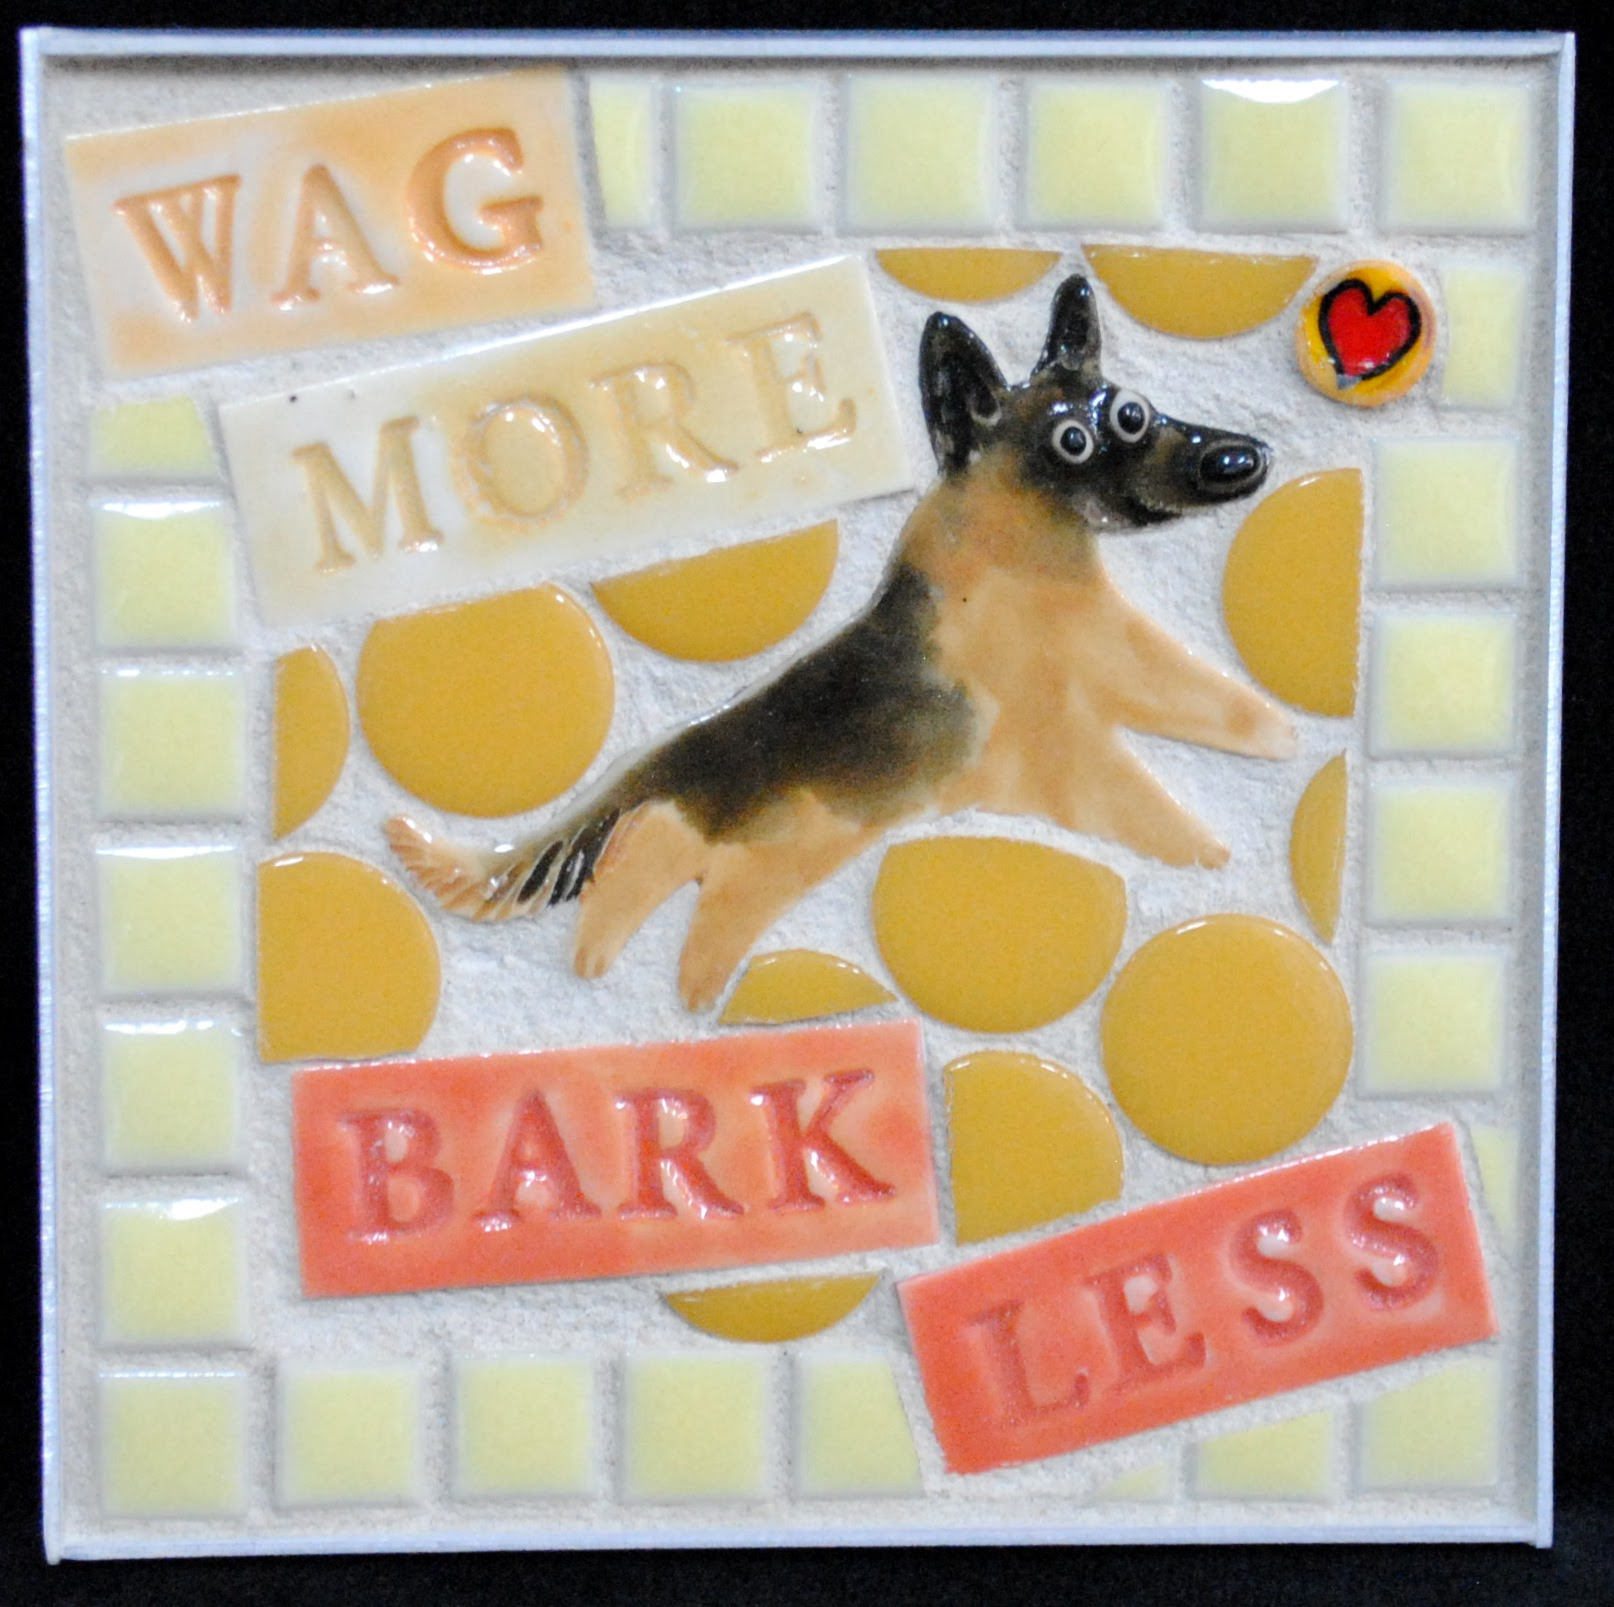 Wag More Bark Less German Shepherd Mini Mosaic by Brenda Pokorny